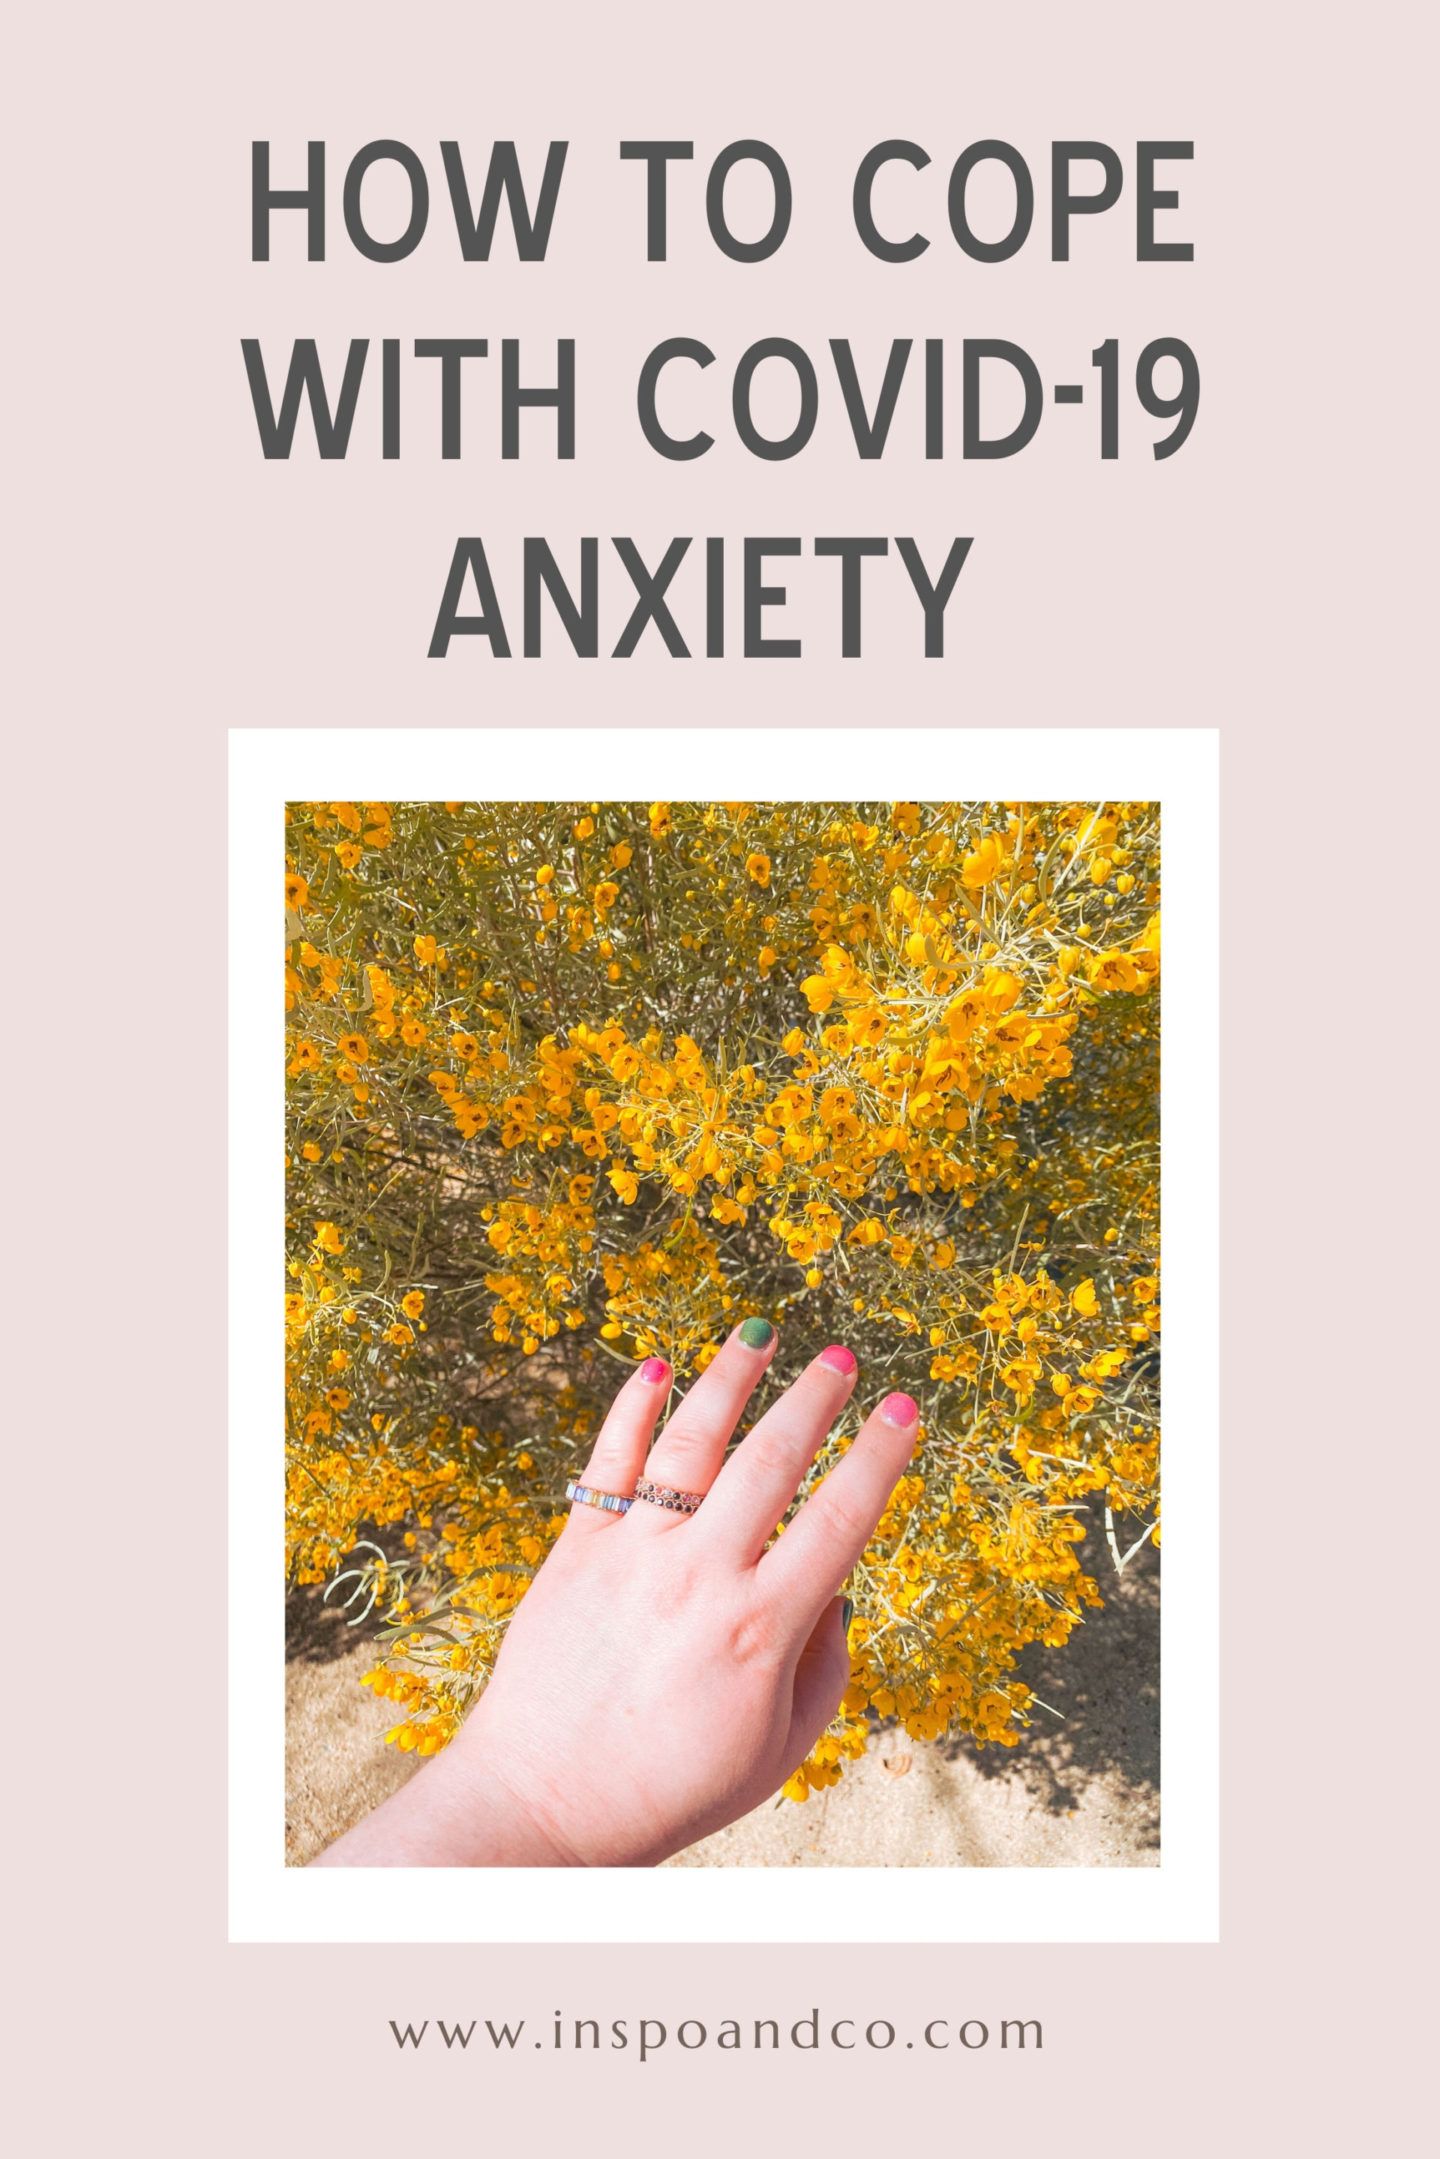 how to cope with covid-19 anxiety